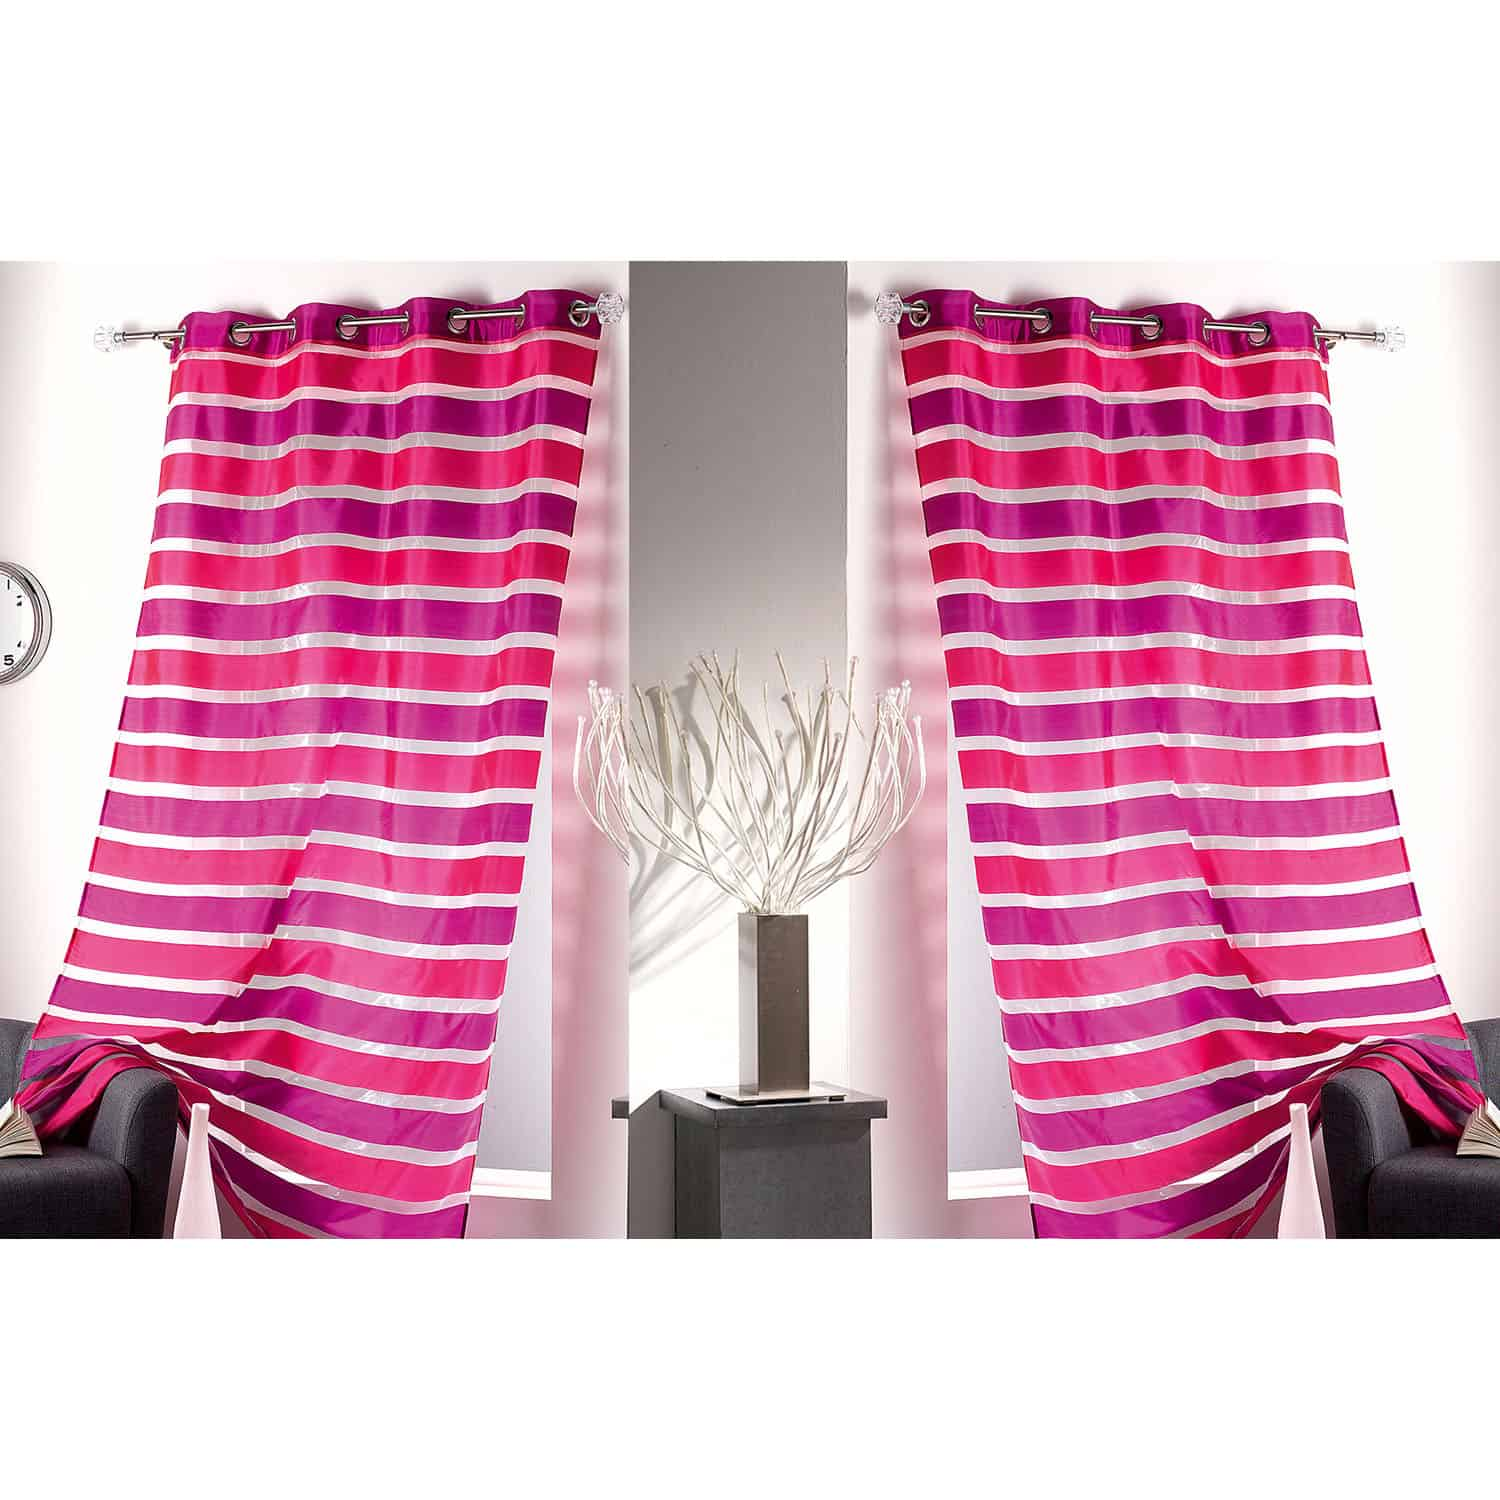 Striped Sheer Grommet Curtain Panels Colorado 55 W x 95 L PINK